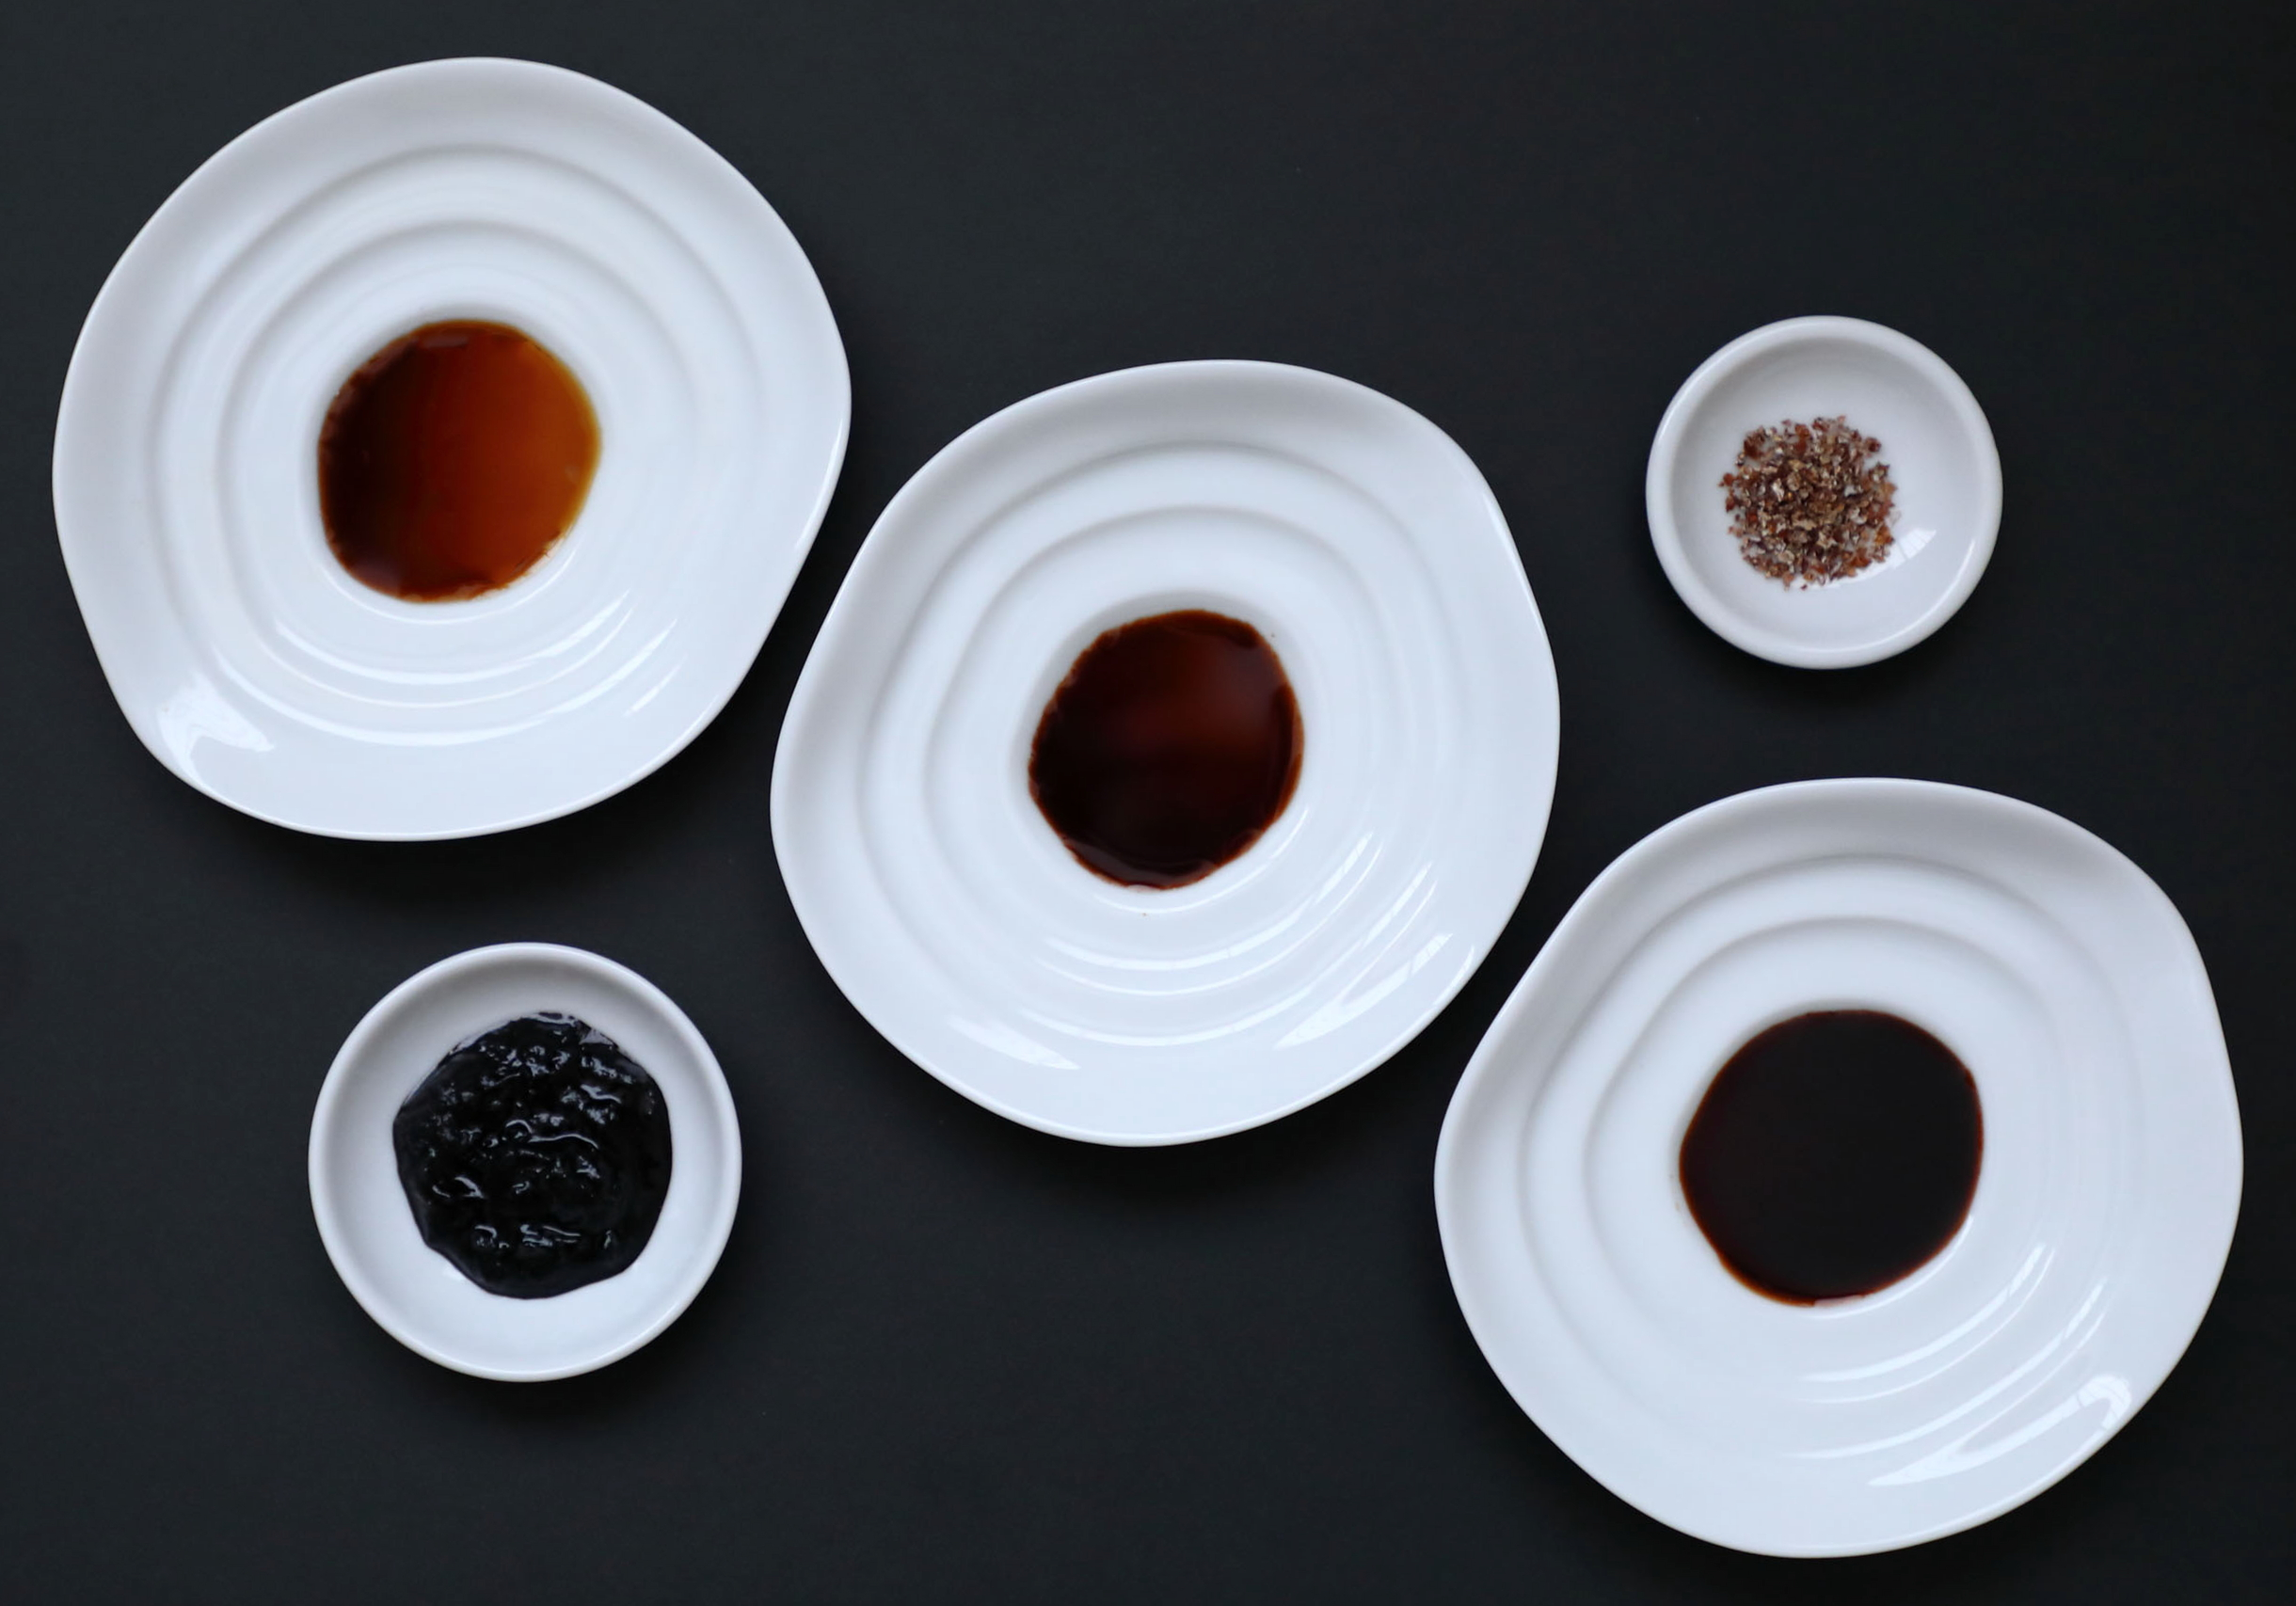 """The different styles of artisanal Japanese soy sauces made to finish foods. At the top of the diagonal is Tanakaya's refined """"Premium"""" first drip soy sauce. In the middle is Katakami's farmhouse soy sauce made with fruity green soy beans. At the bottom is Yamaroku's classic deep, rich """"Tsuru-bishio"""" soy sauce, which is fermented and aged for four years. In the small dish in the upper right hand corner is Naogen's specialty crystalized soy sauce and in the bottom left hand corner Sawai's chunky soy sauce.  The large soy sauces dishes along the diagonal are among a variety of shapes being made to help people better use and appreciate artisanal Japanese soy sauce. Similar to ink stones used in calligraphy, the sloped design prevents people from pouring too much soy sauce by creating a small shallow pool at the center. The sloped sides help prevent using too much soy sauce when dipping and dragging food along them, while also enabling one to better see the soy sauce's true beautiful colors. Such dishes are also convenient chopstick rests."""